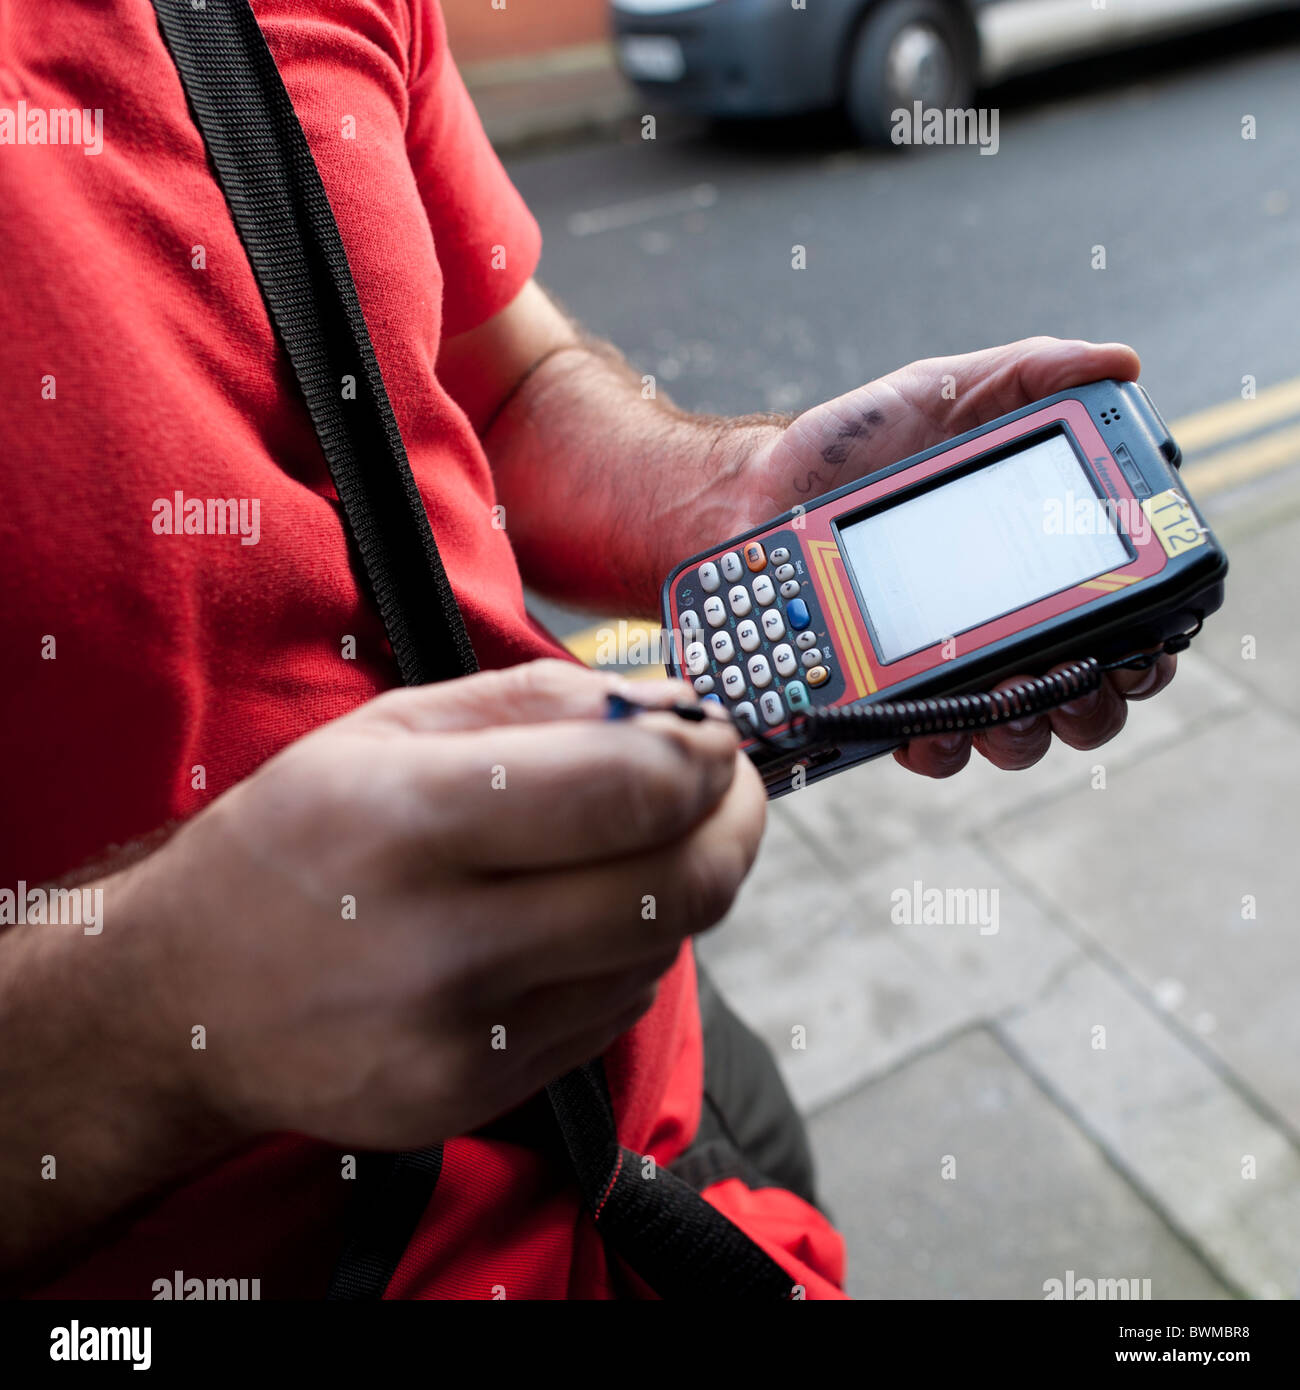 a Royal Mail postman using a hand-held digital device to record delivery of an item of mail, UK - Stock Image